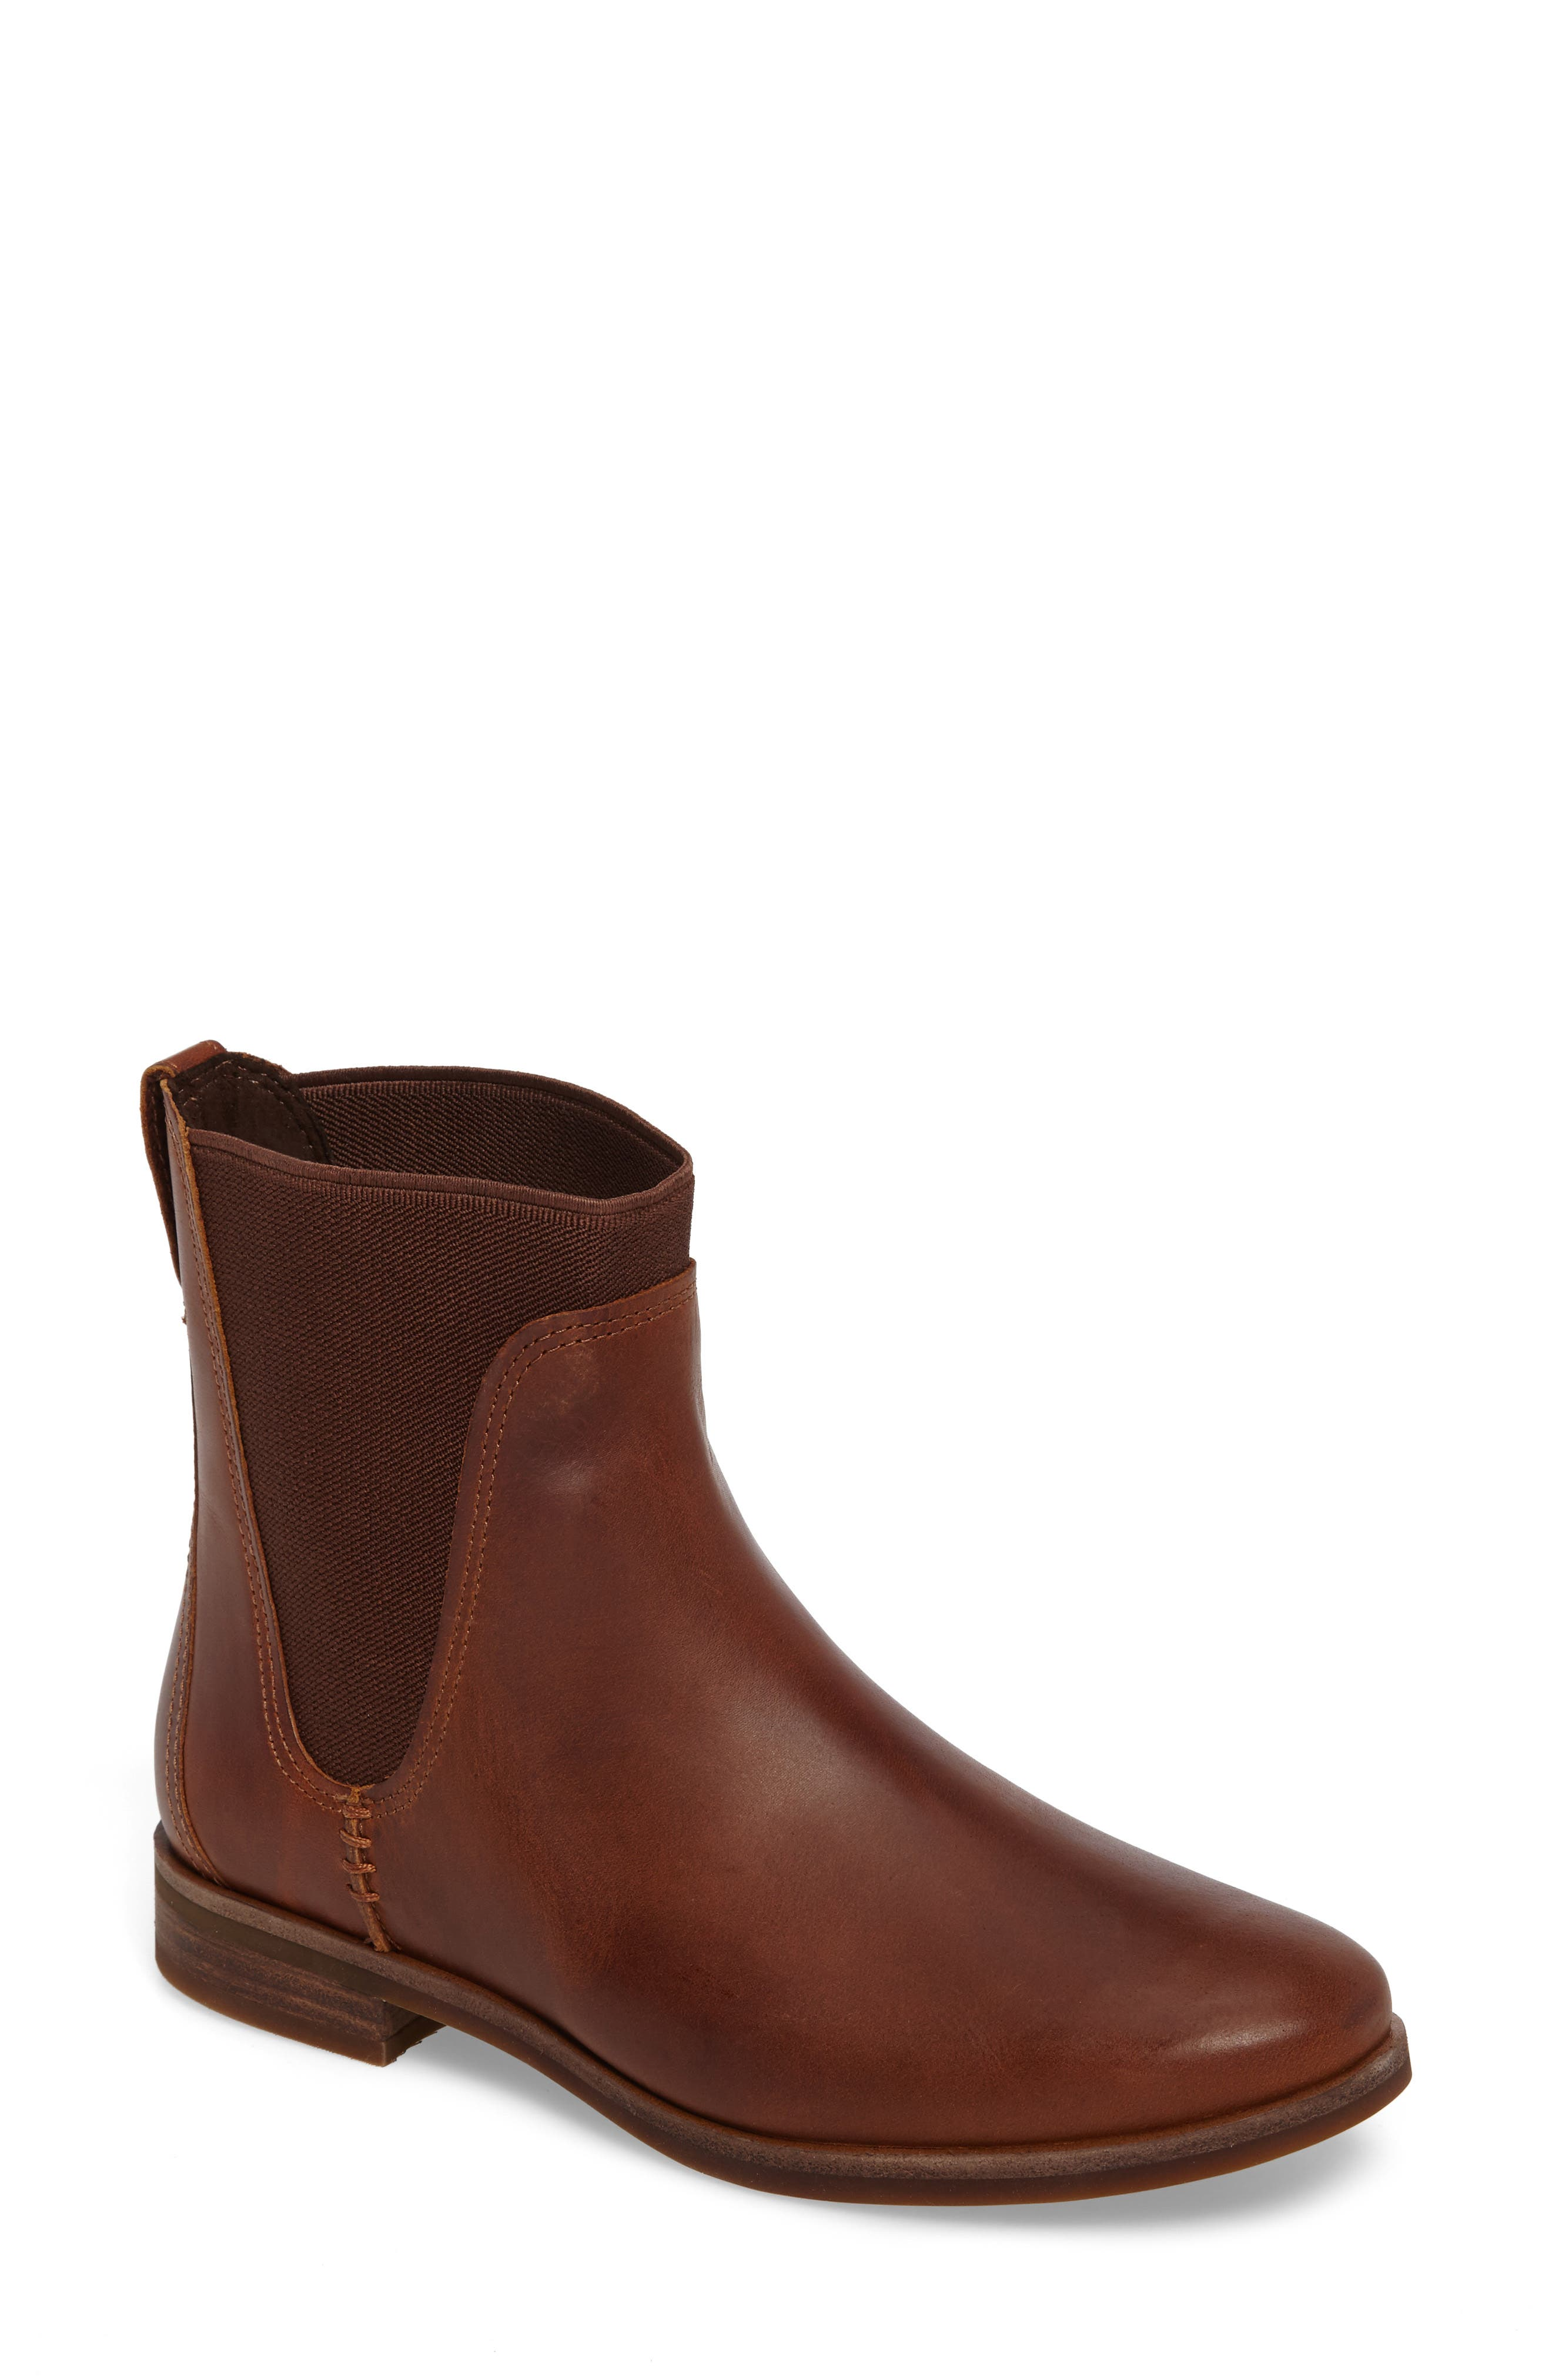 Timberland Somers Falls Water Resistant Chelsea Boot (Women)